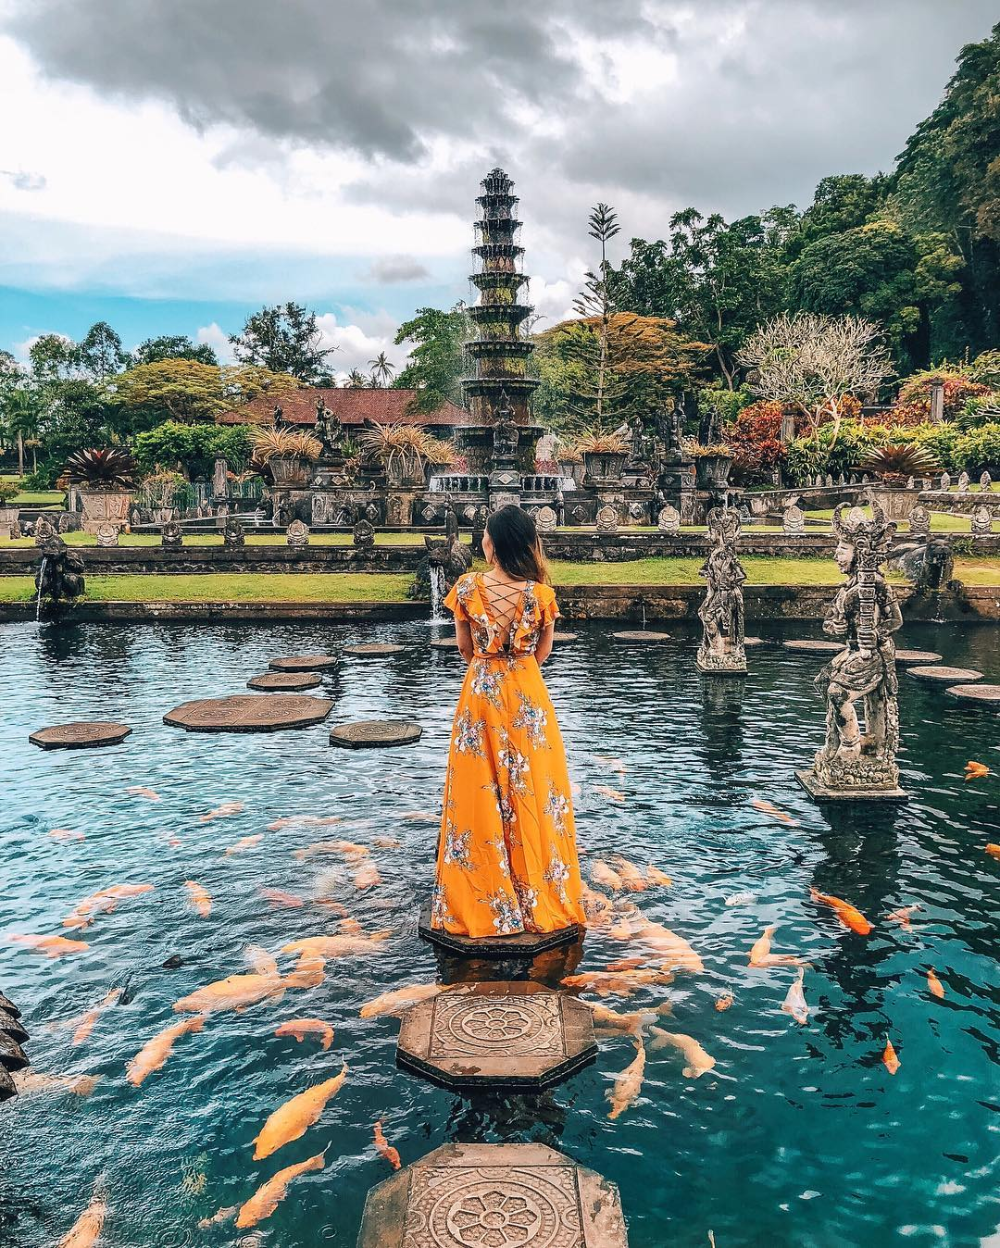 16 Bucket List Things To Do In Bali For The Most Epic Trip Ever - Narcity